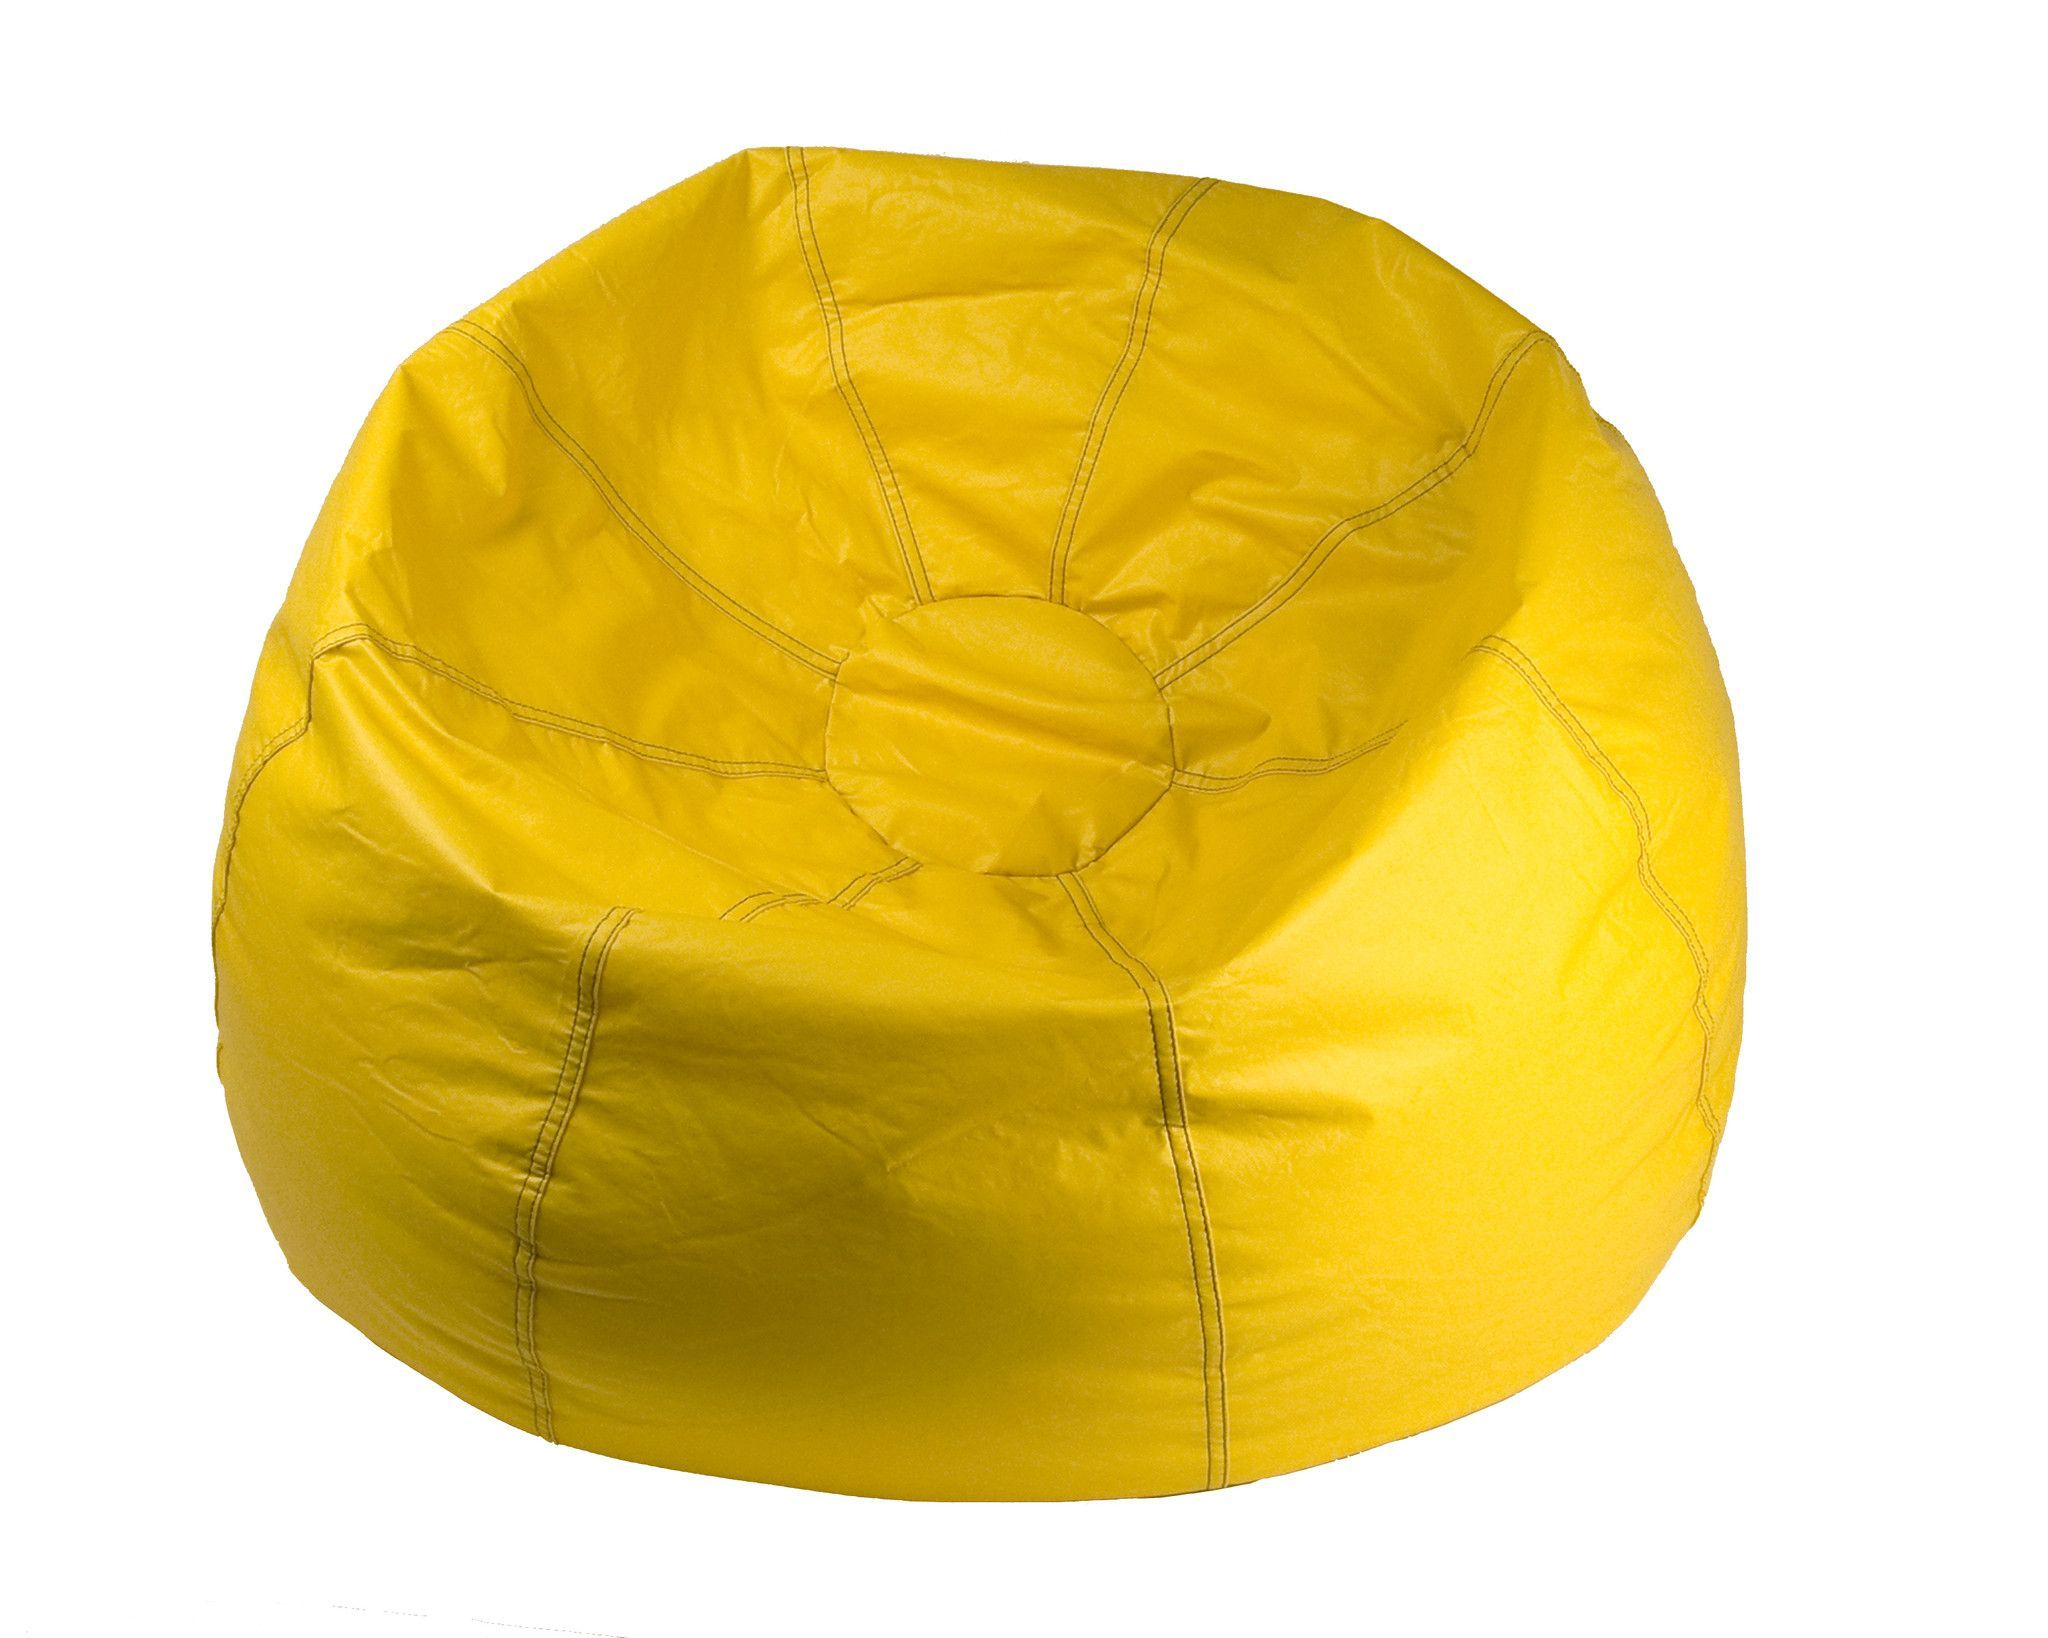 Michael Anthony Furniture Yellow Bean Bag Products